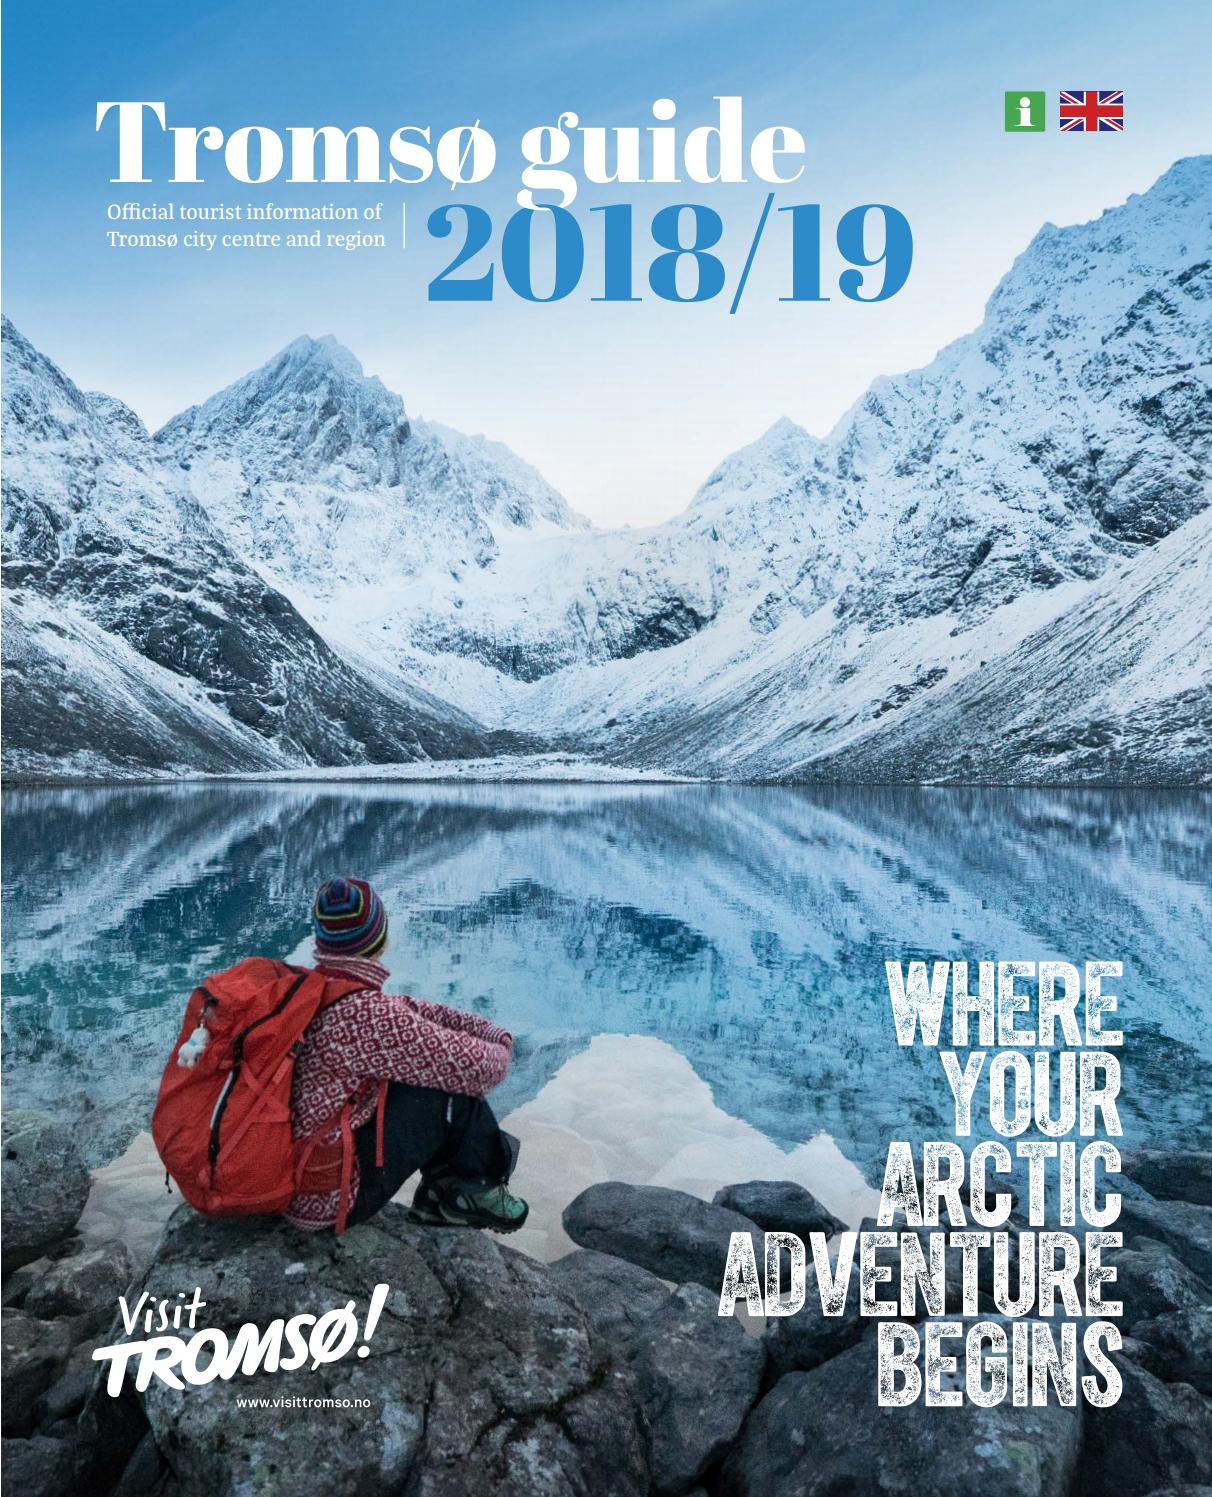 Tromsø Guide 2018/19 - Vinter by Chiligroup - issuu